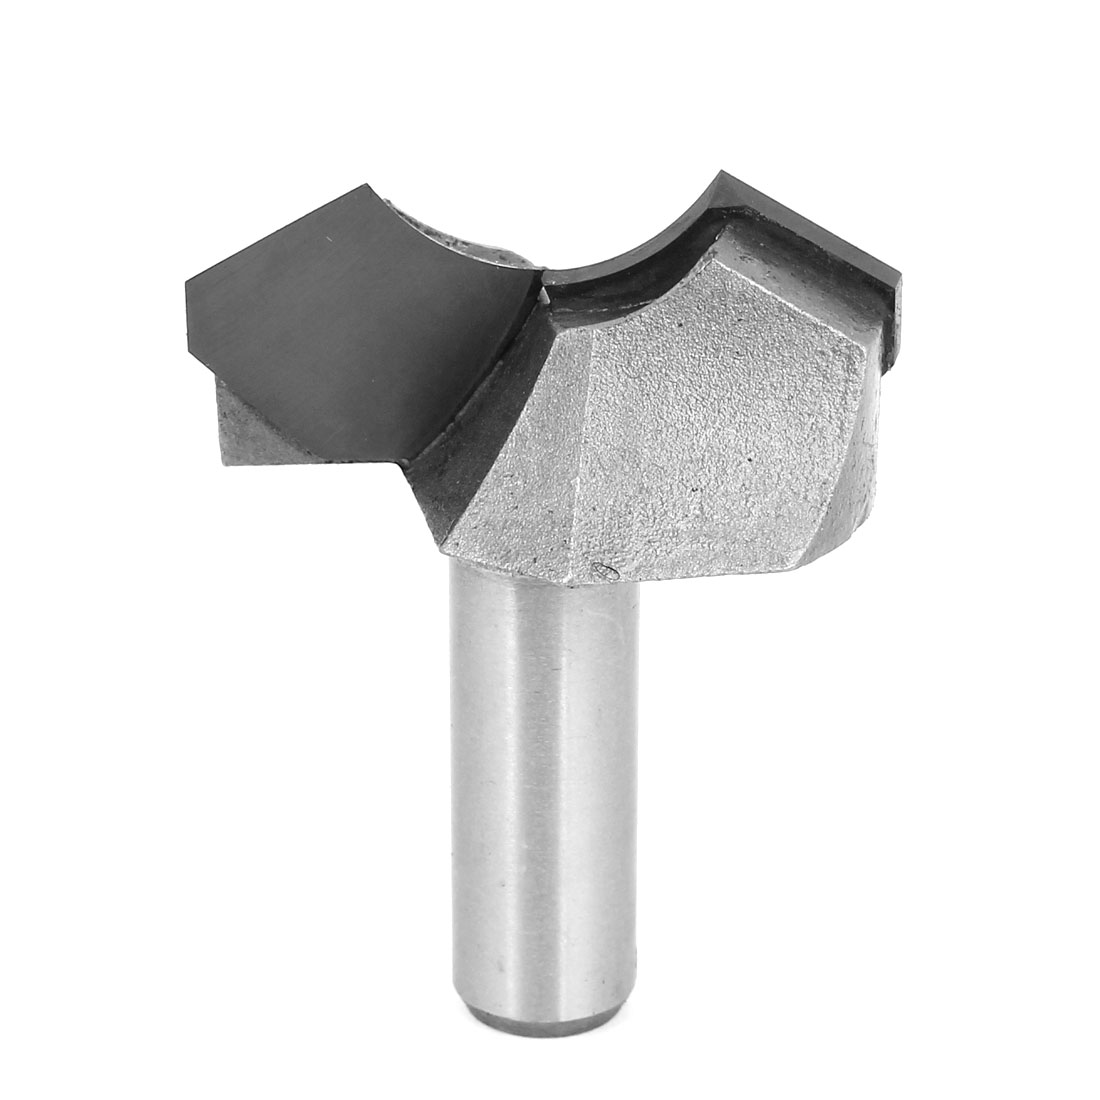 "Carpenter 1/2"" Round Shank 7/8"" Cutting Dia Dargon Ball Router Bit"